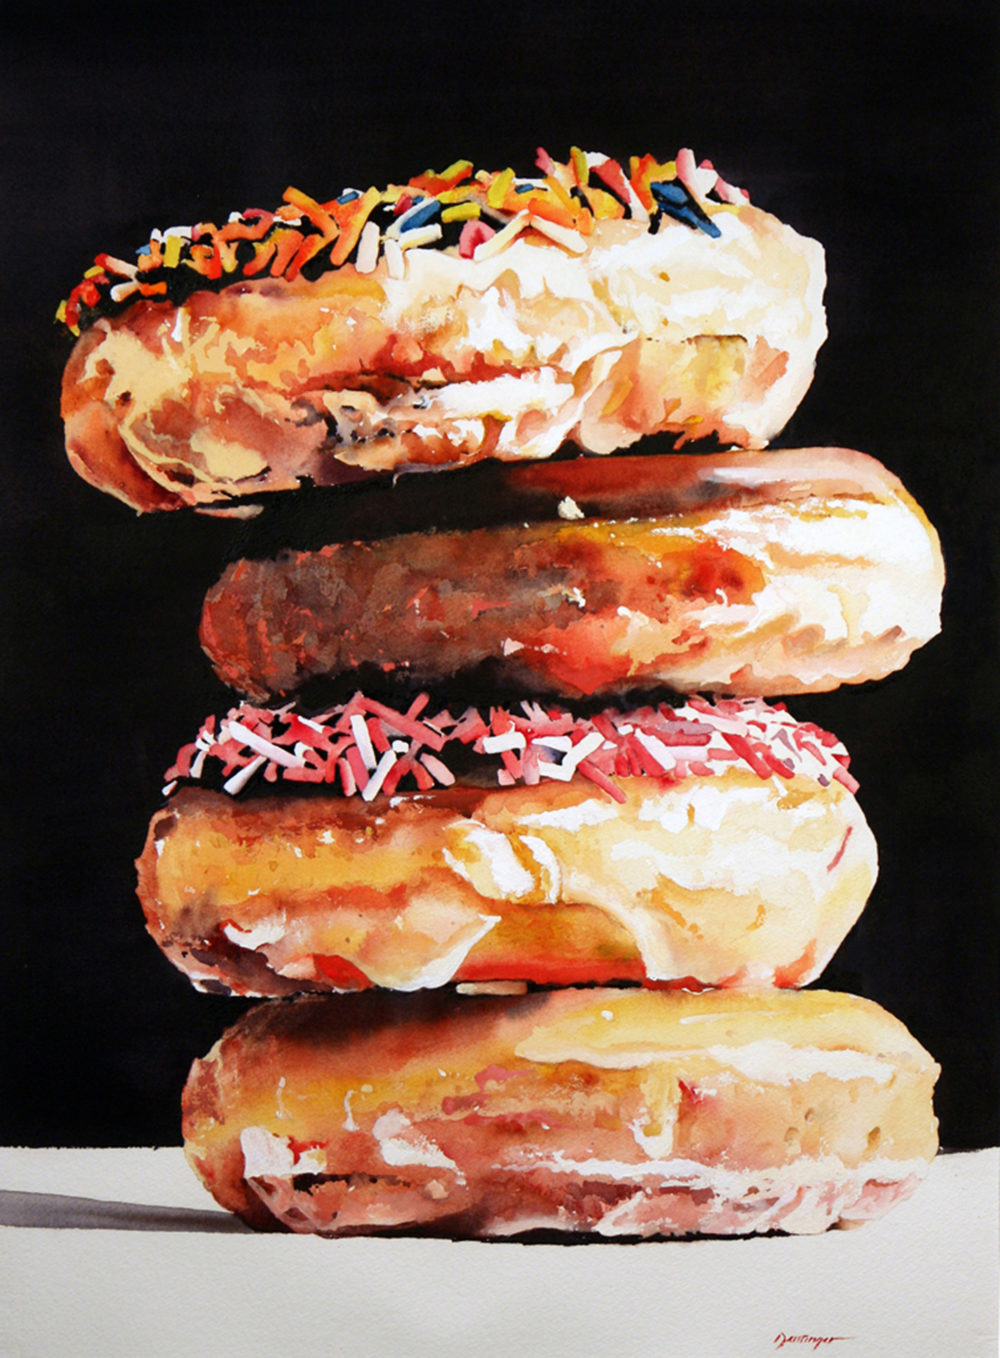 Watercolor painting of donuts by Ric Dentinger | Felder Gallery